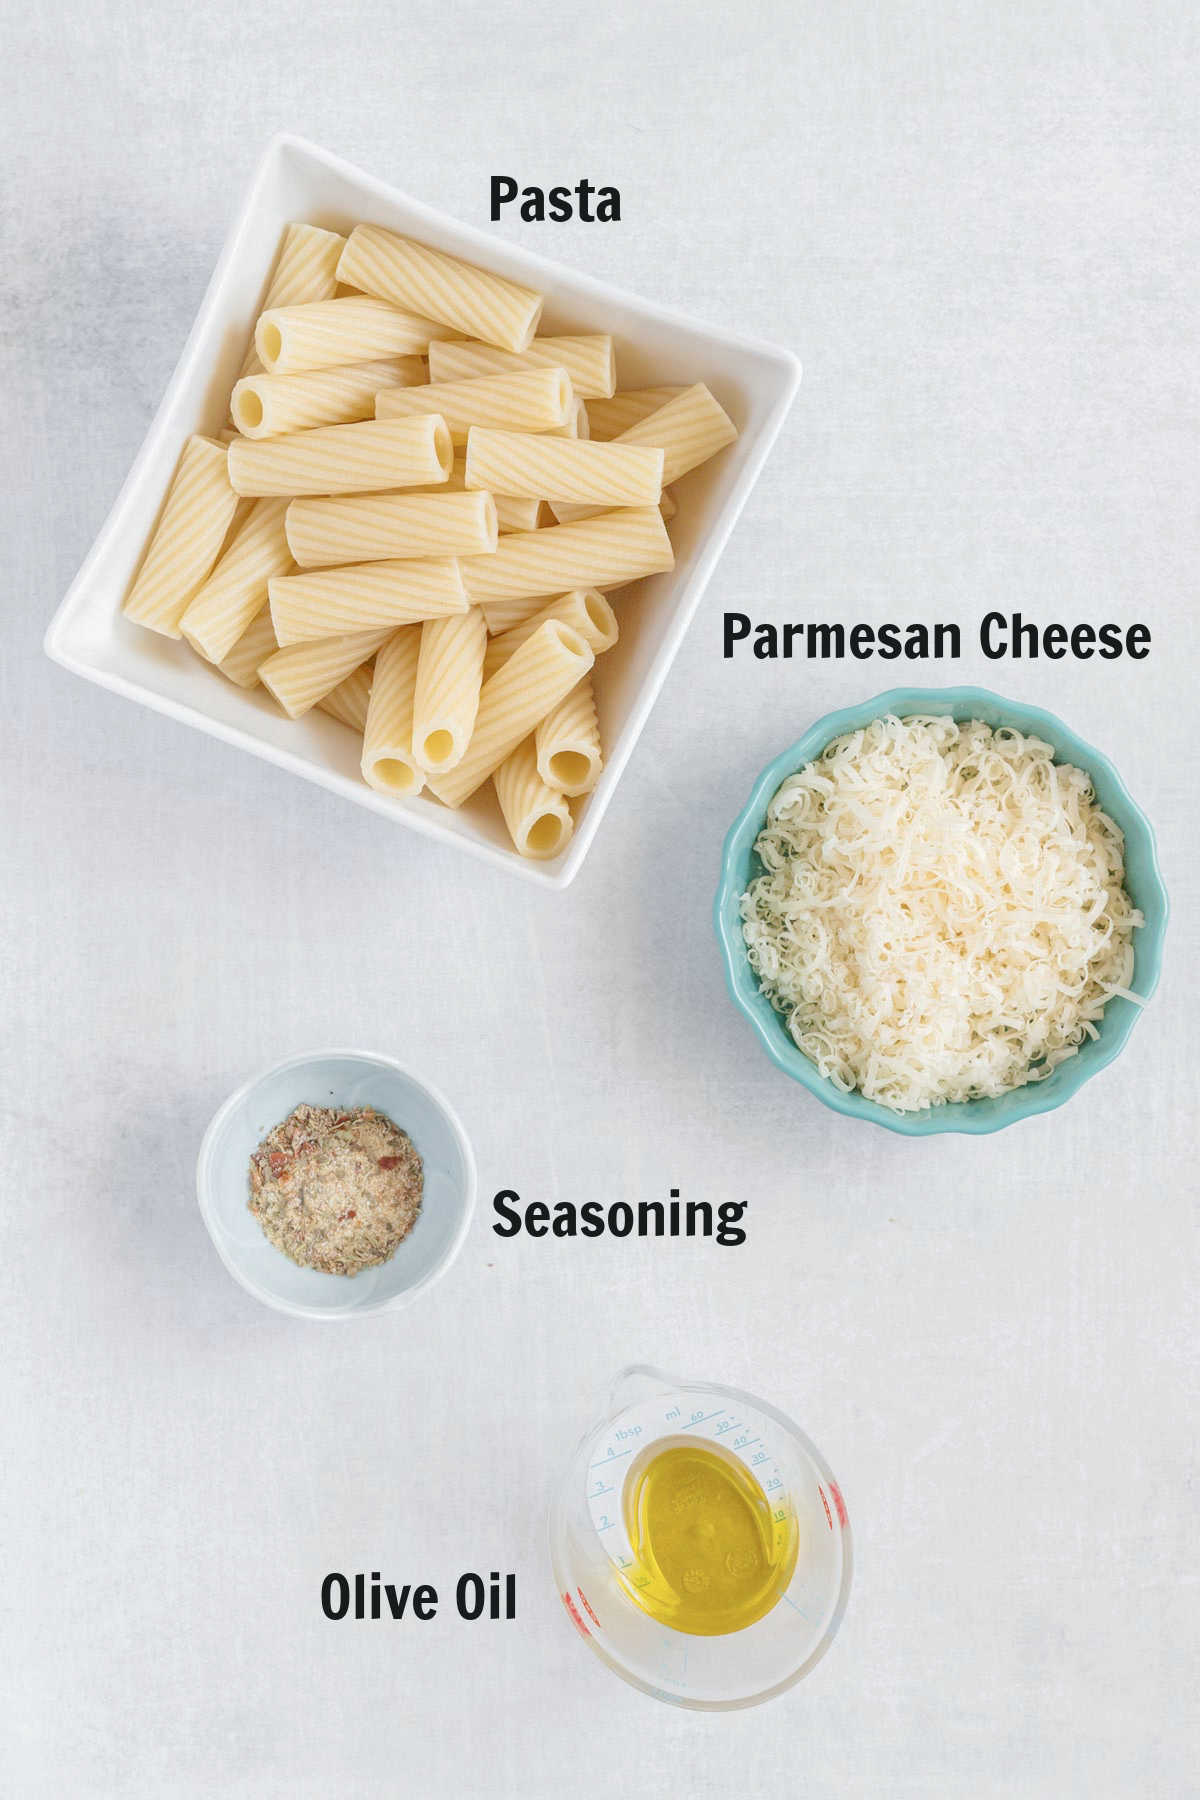 A bowl of cooked rigatoni, a dish of shredded parmesan, all purpose seasoning, and olive oil.